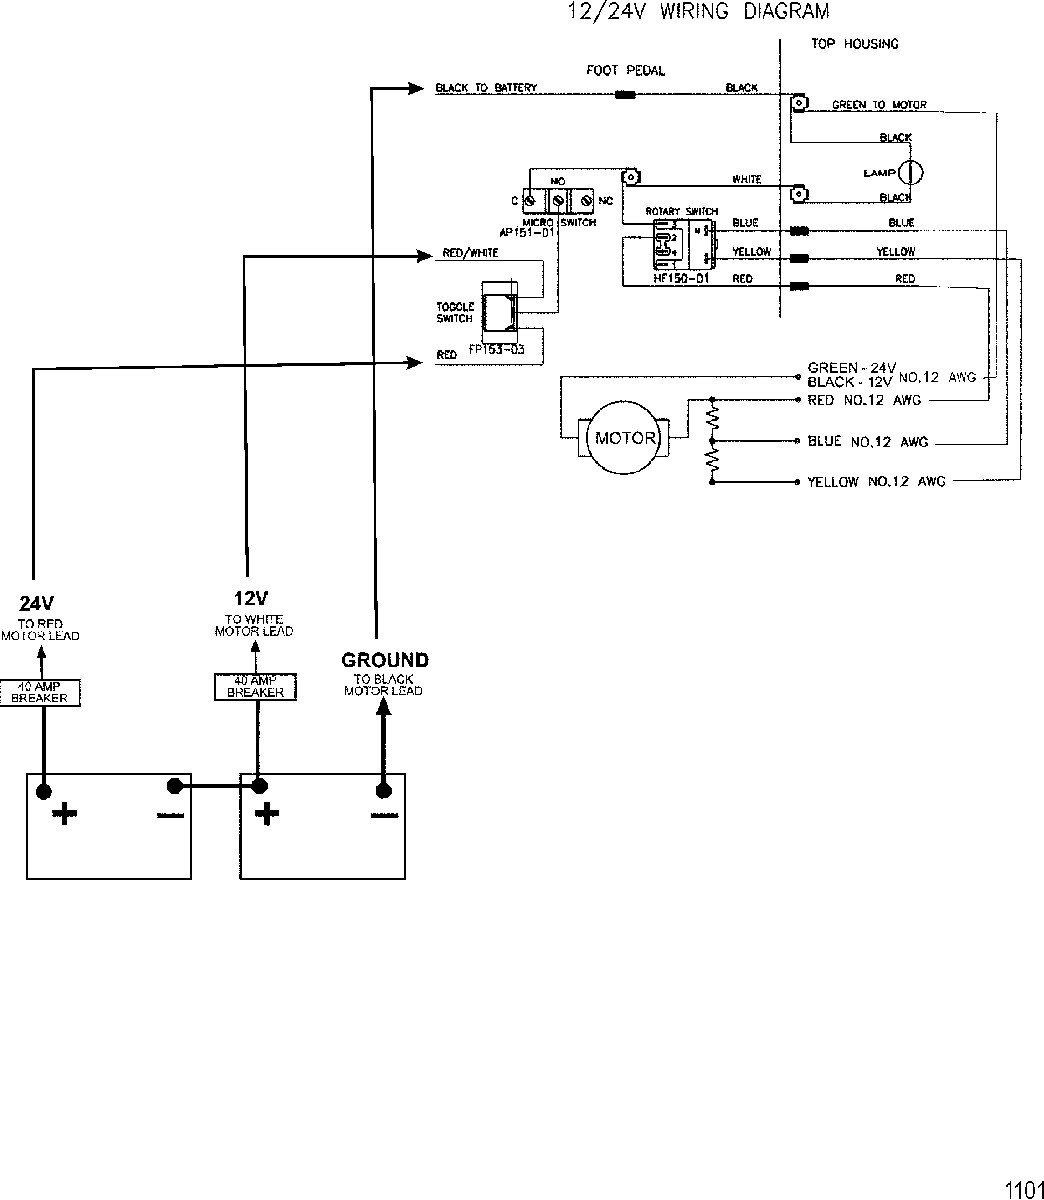 Trolling Motor Foot Pedel Wiring Diagram Library 24v Speed Controller Motorguide Control Today 1044x1200 Navigator